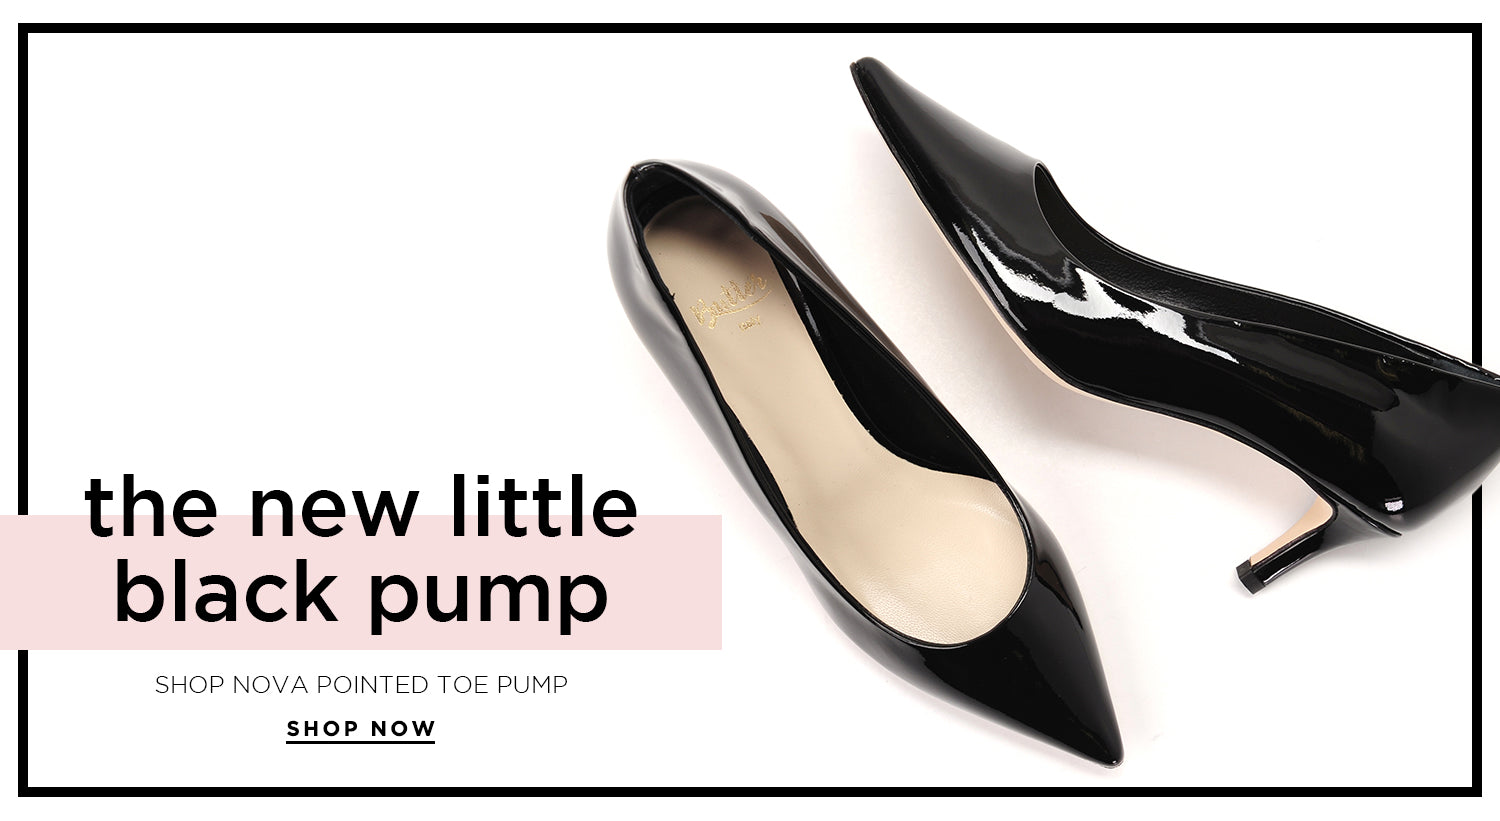 The New Little Black Pump - Shop Nova Pointed Toe Pump